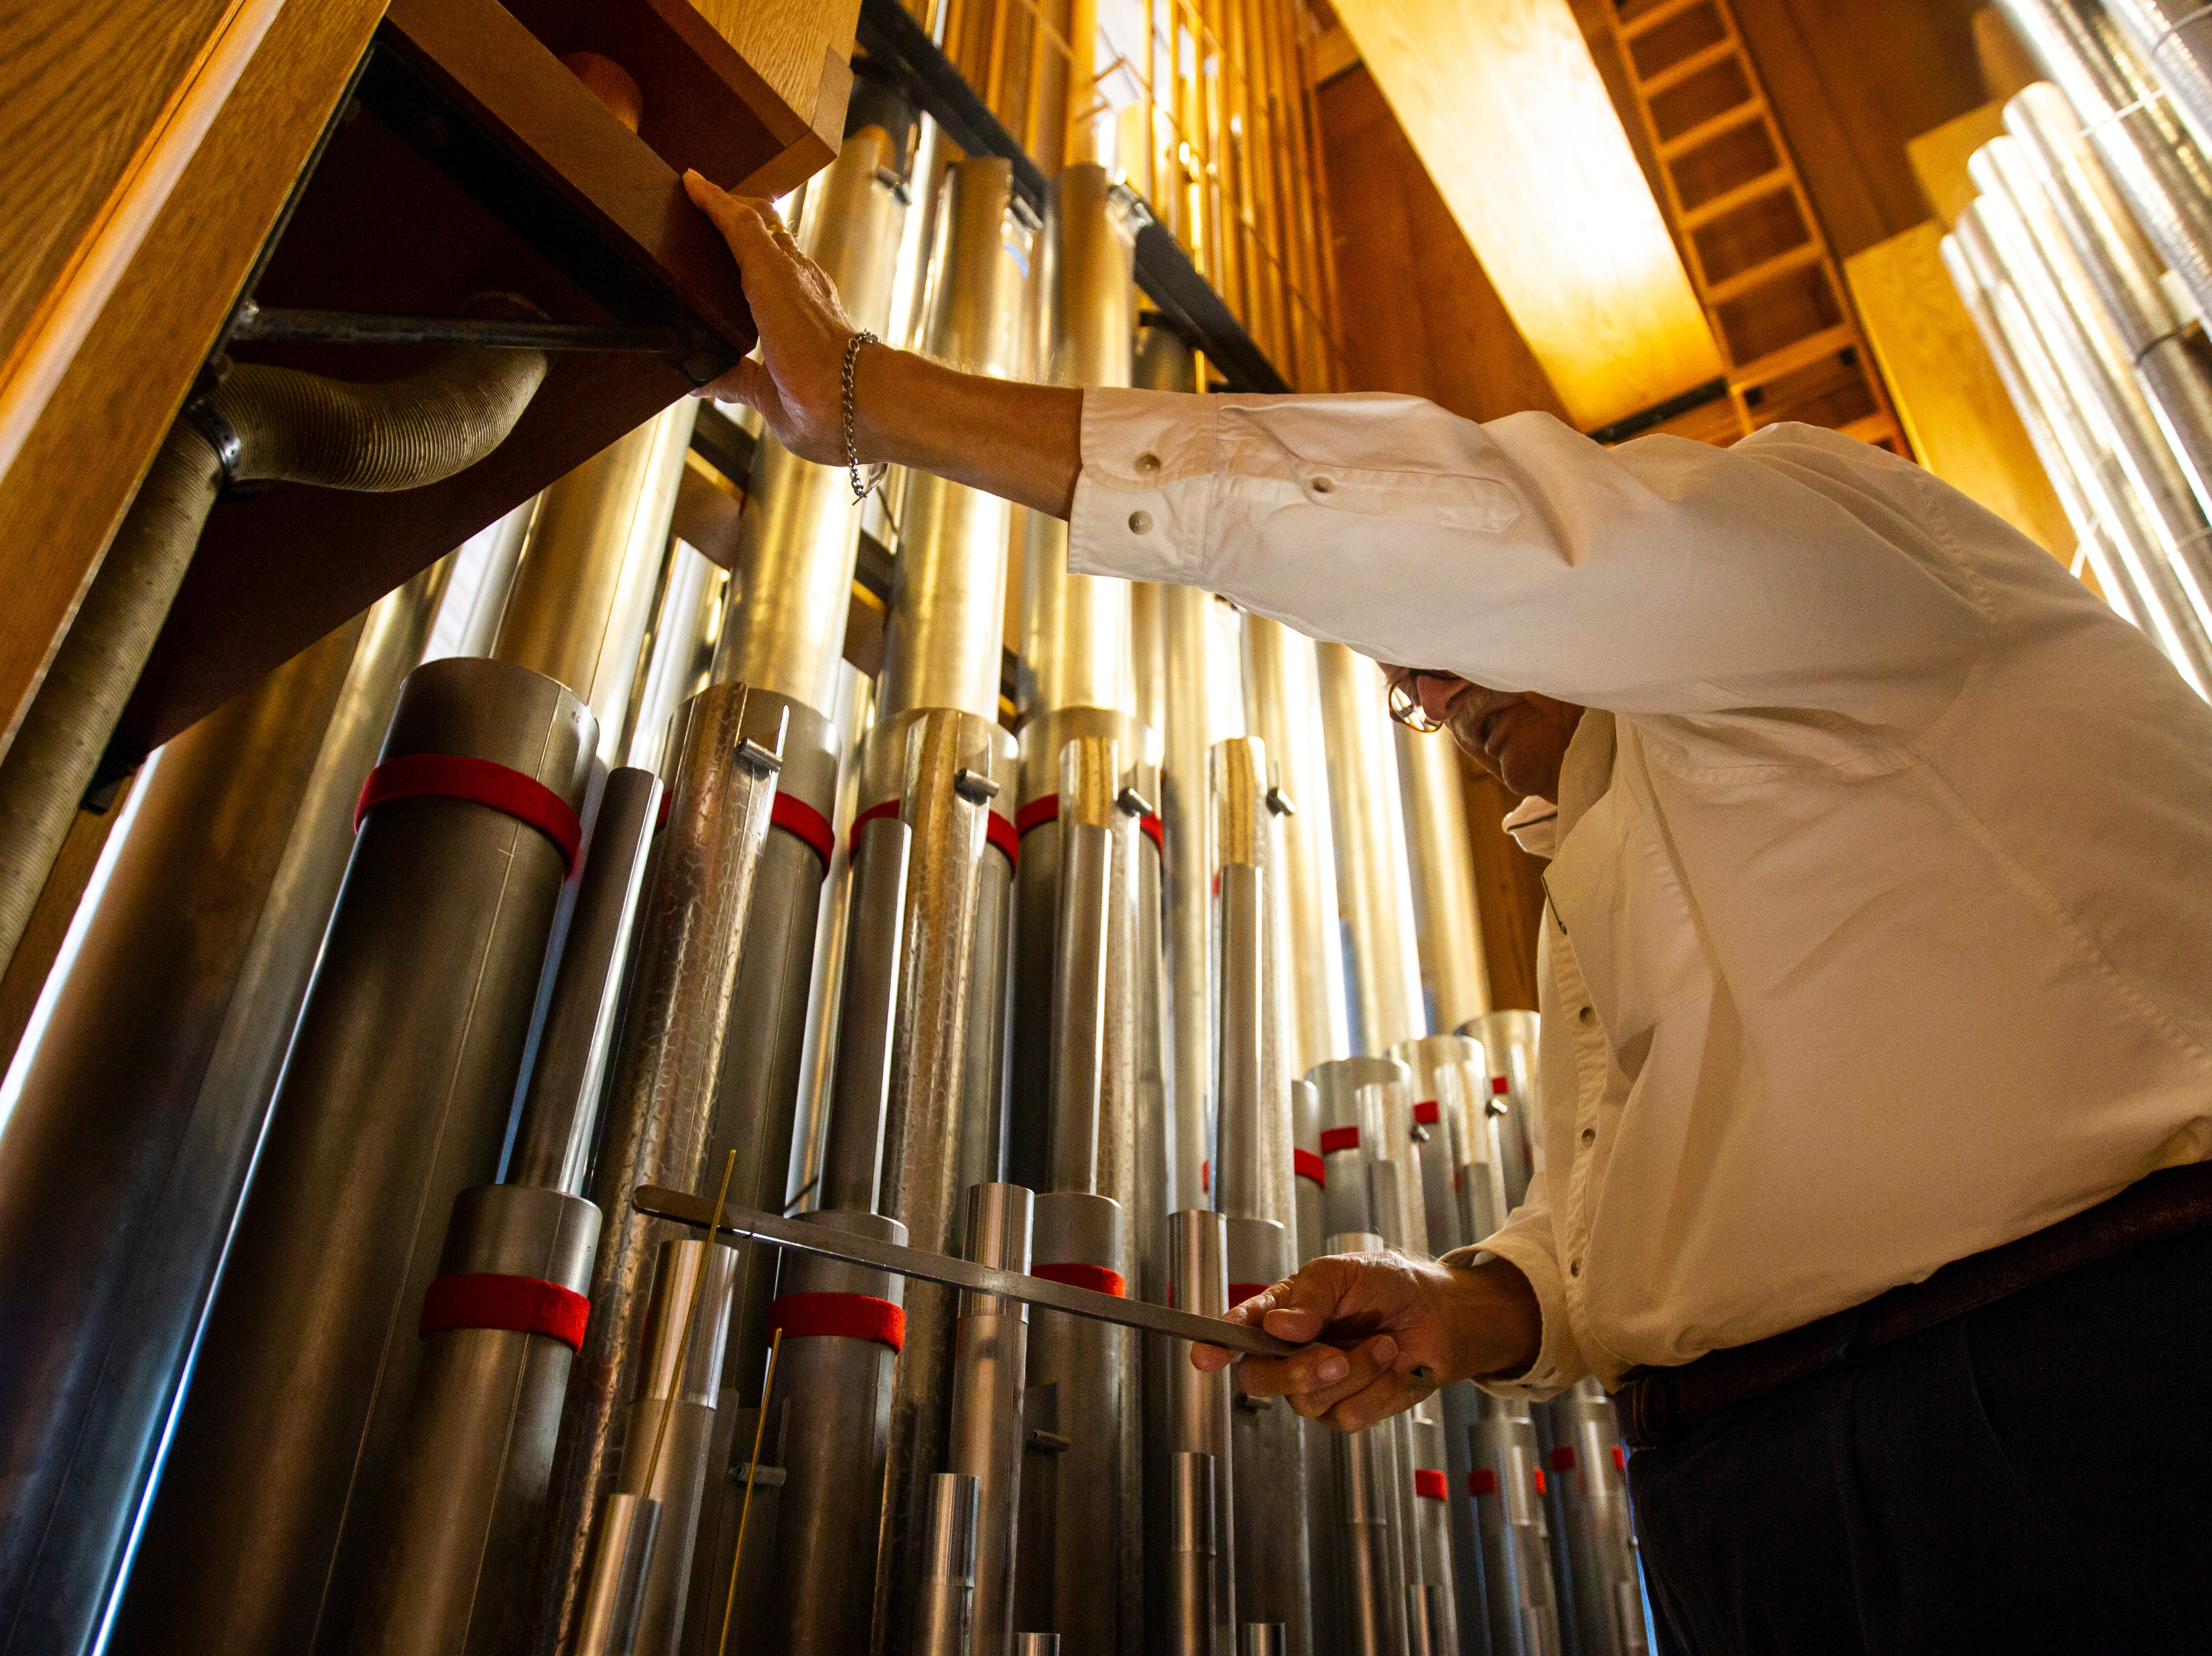 Carroll Hanson works to tune the pedal division of an organ on Tuesday, Oct. 16, 2018, at St. Andrew Presbyterian Church in Iowa City, Iowa. Hanson was in charge of tuning the organ while it was in Clapp Recital Hall before being moved to St. Andrew after the hall was flooded in 2008. Patrick Budelier now primarily works to maintain the organ at St. Andrew.